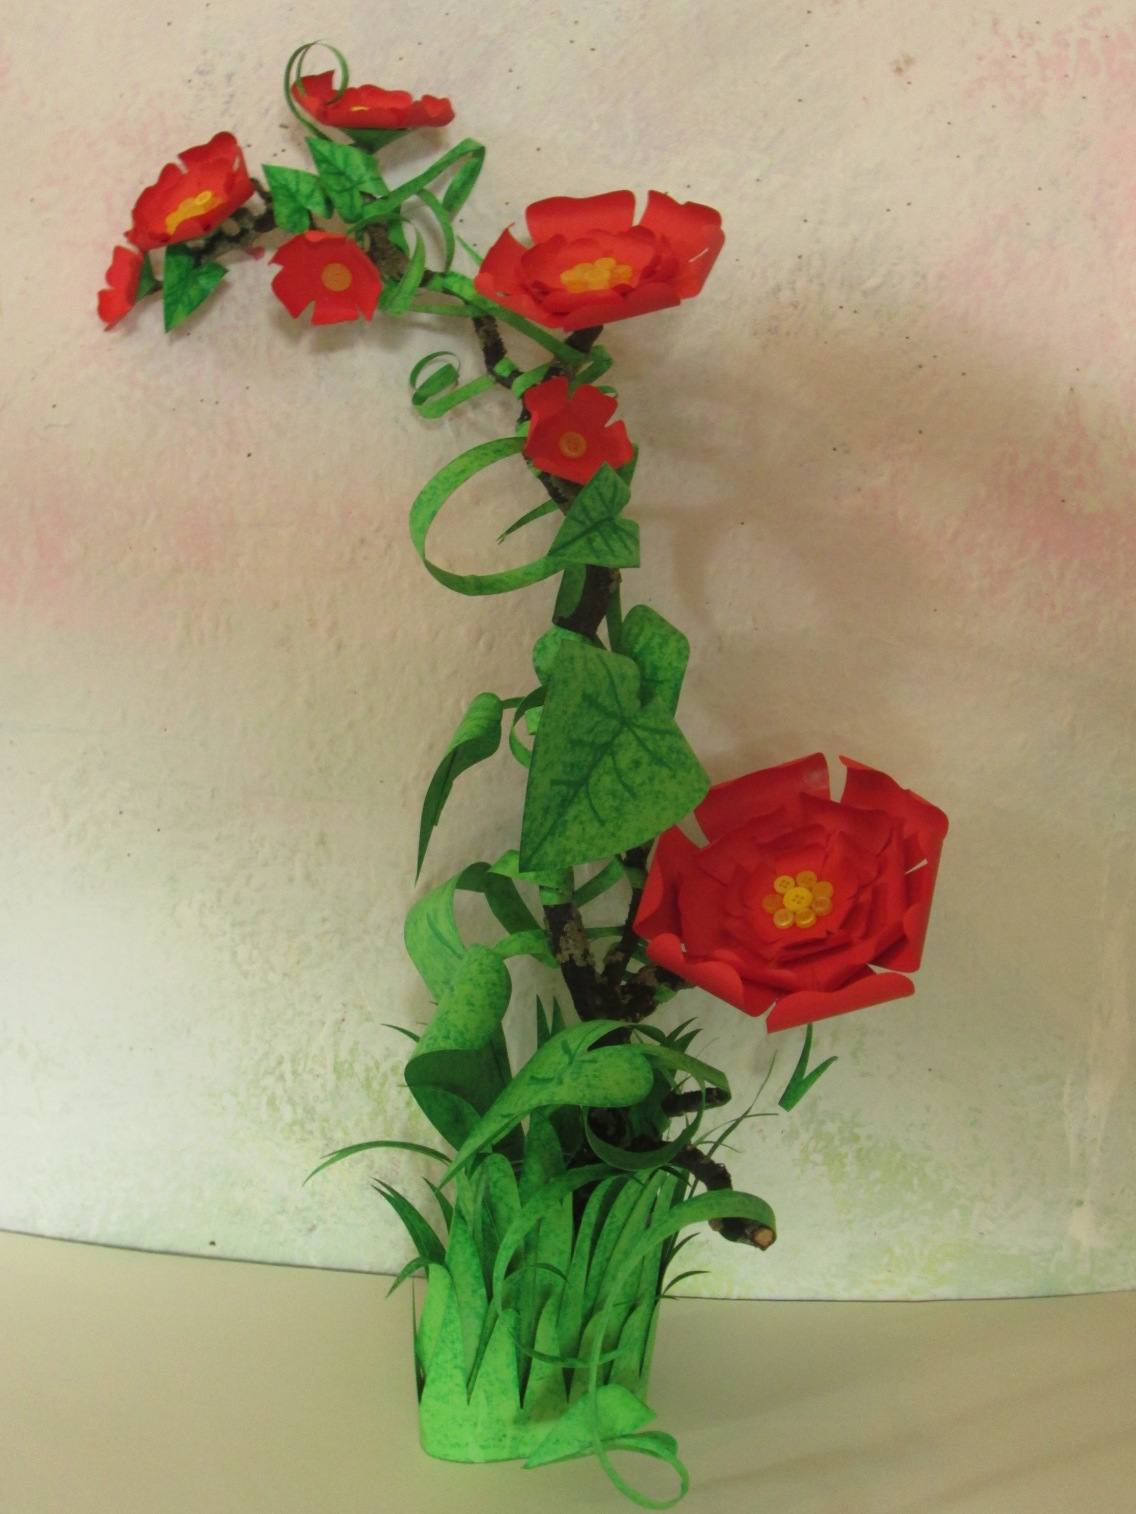 Jungle flower power plant for you party or home.